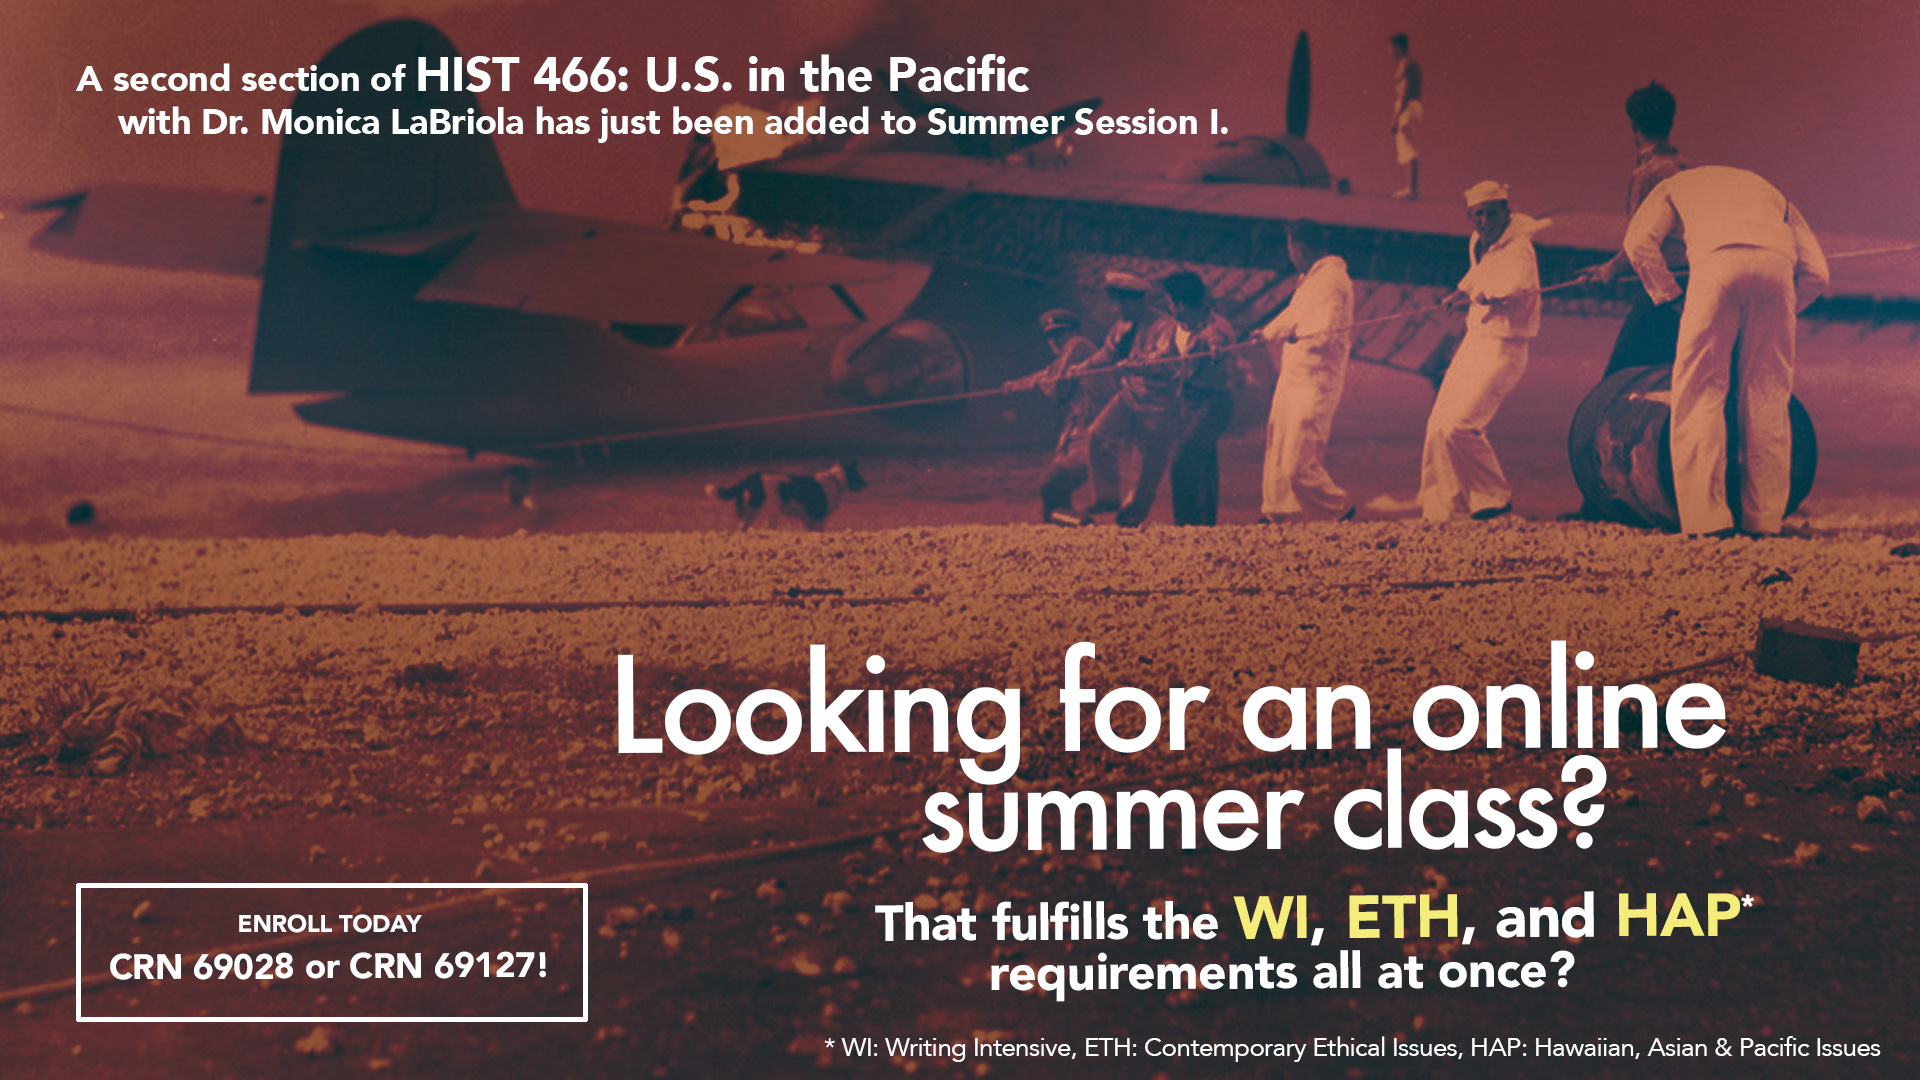 HIST 266 Summer Session I flyer